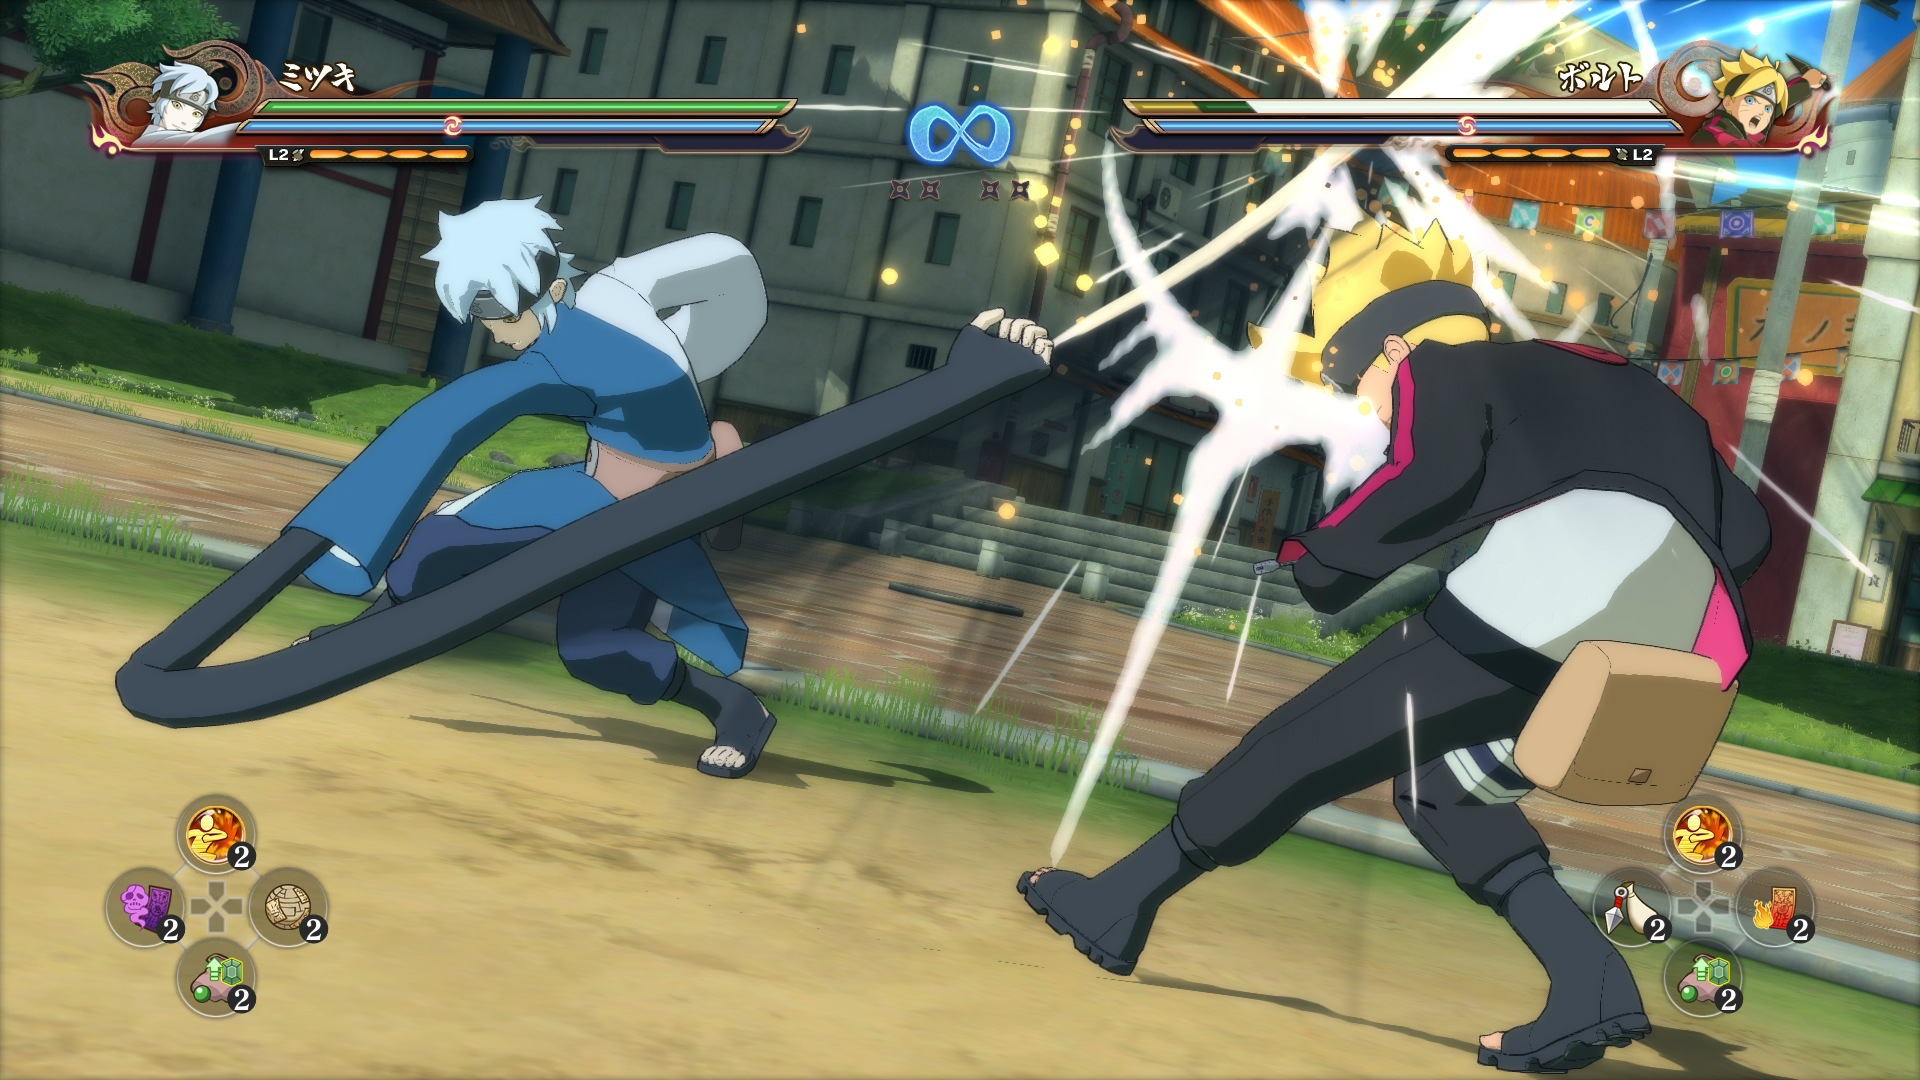 Review – Naruto Shippuden: Ultimate Ninja Storm 4 - Road to Boruto